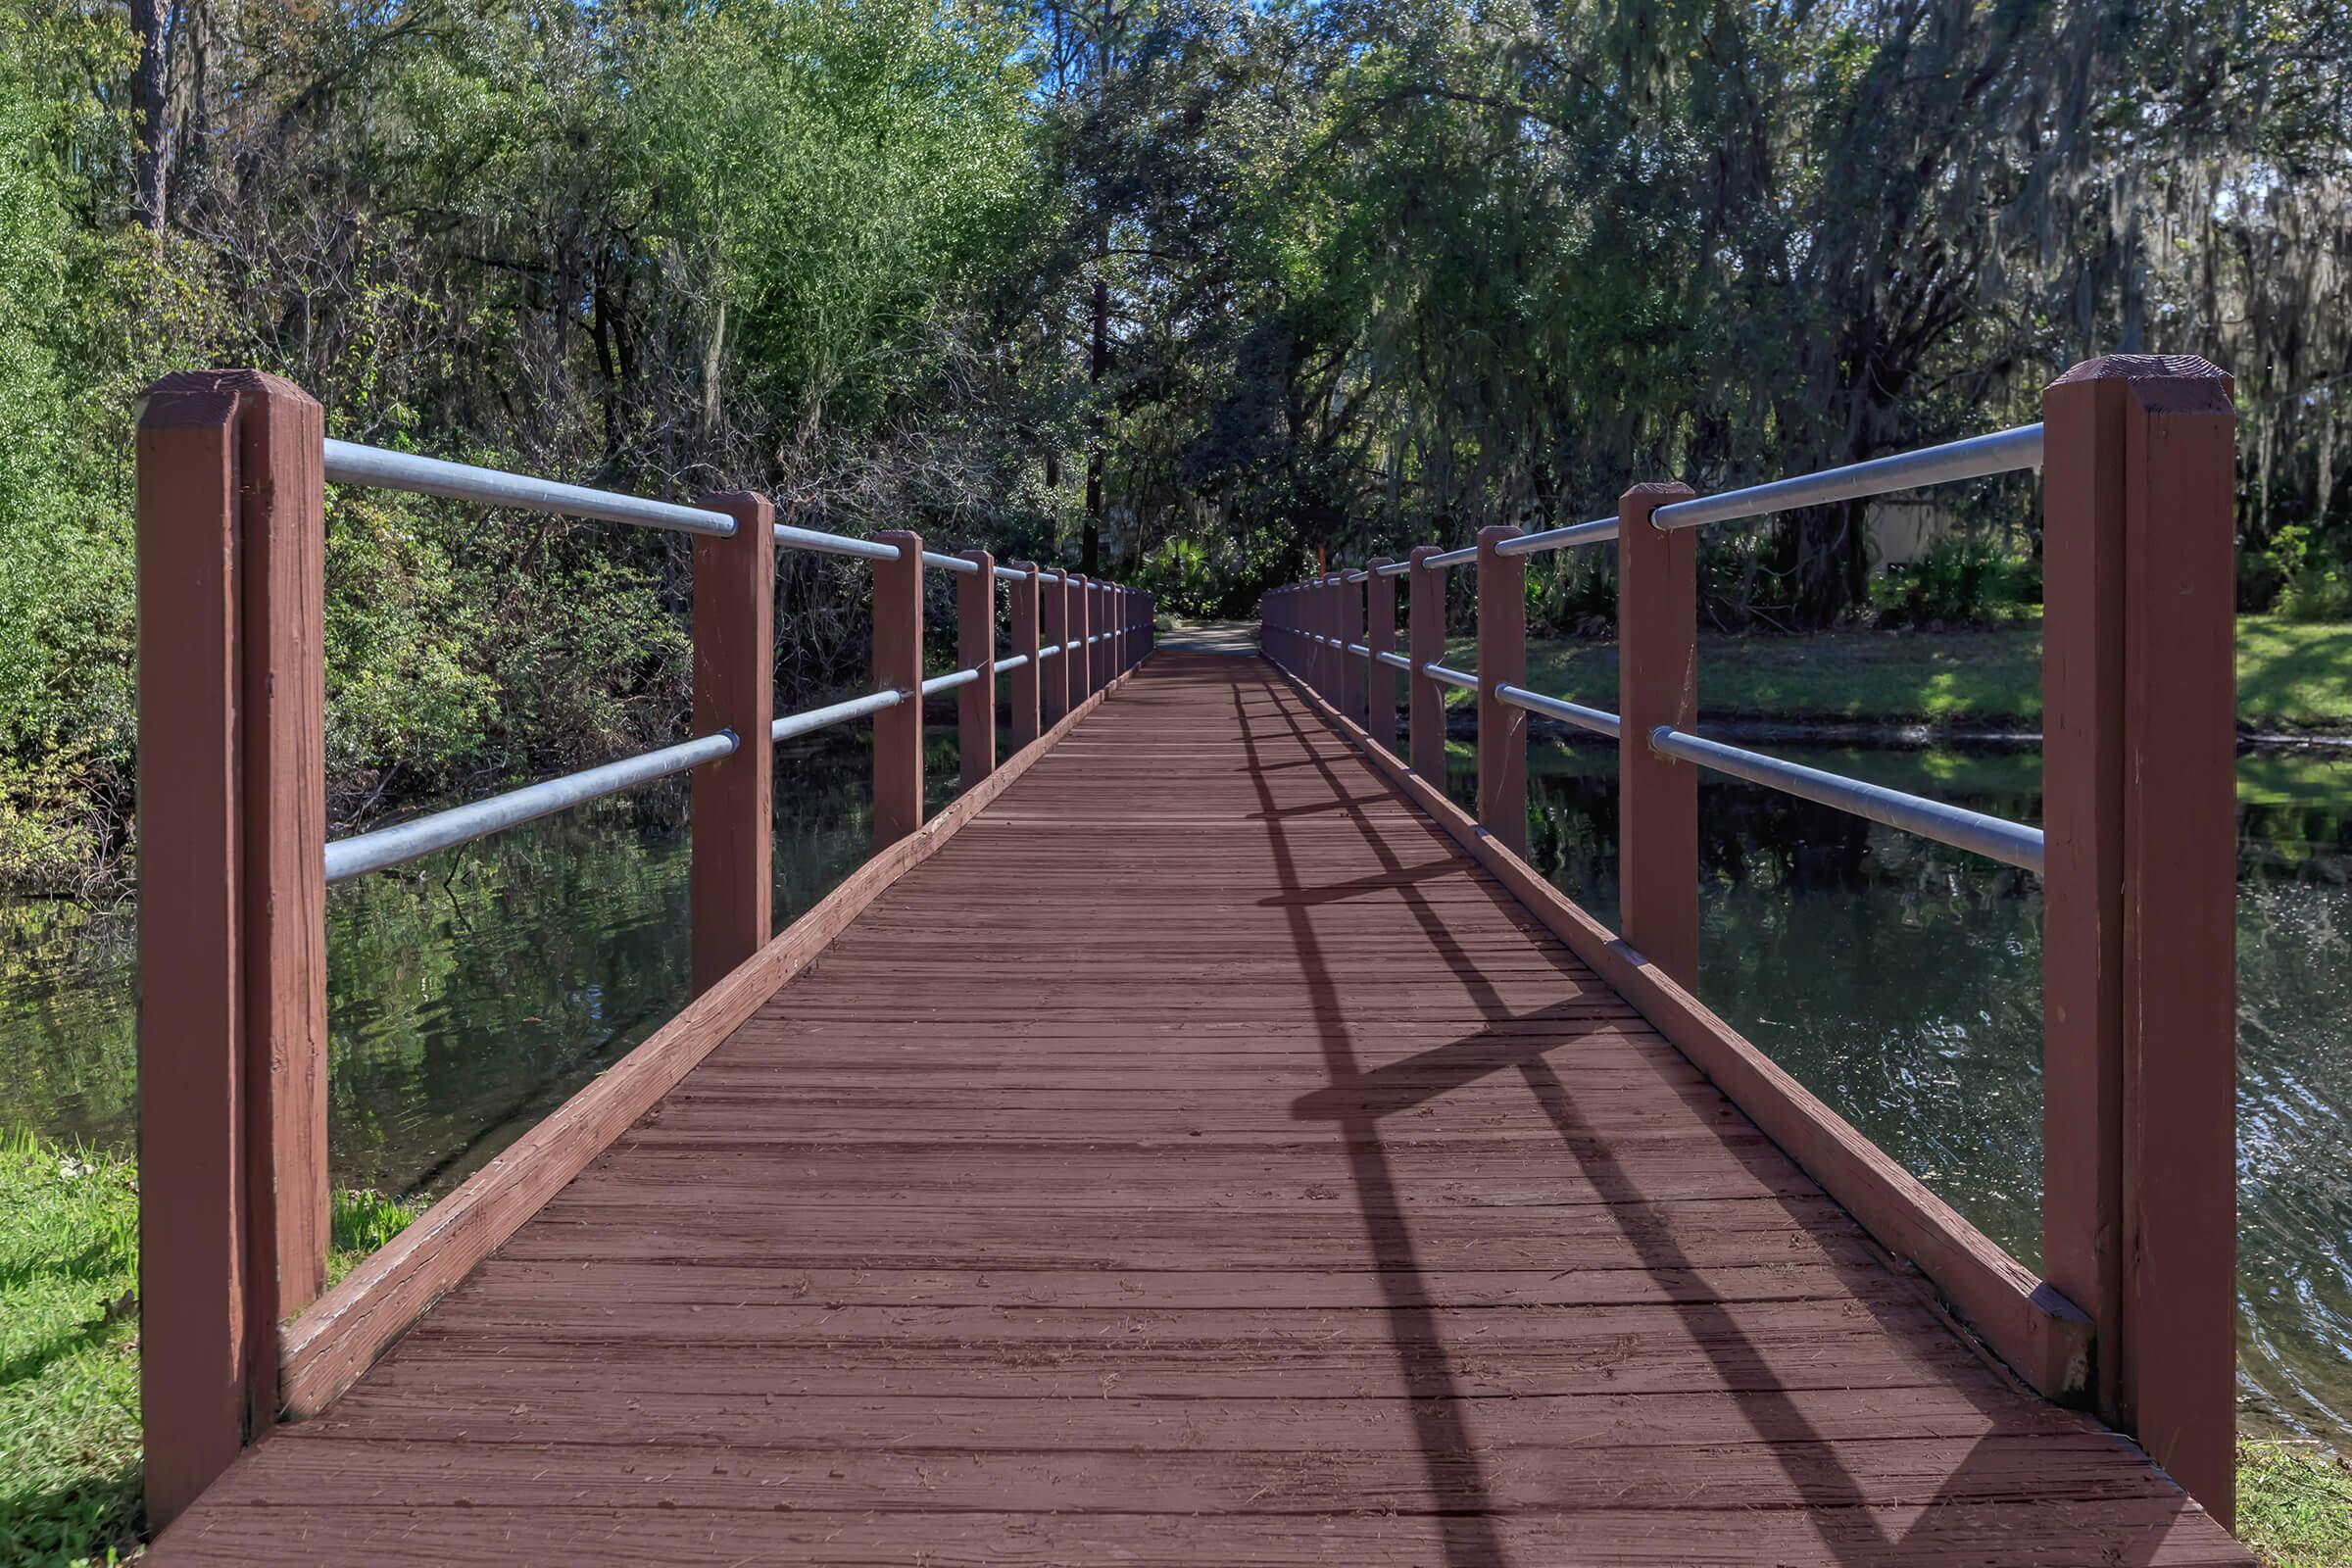 a bridge going over a wooden fence